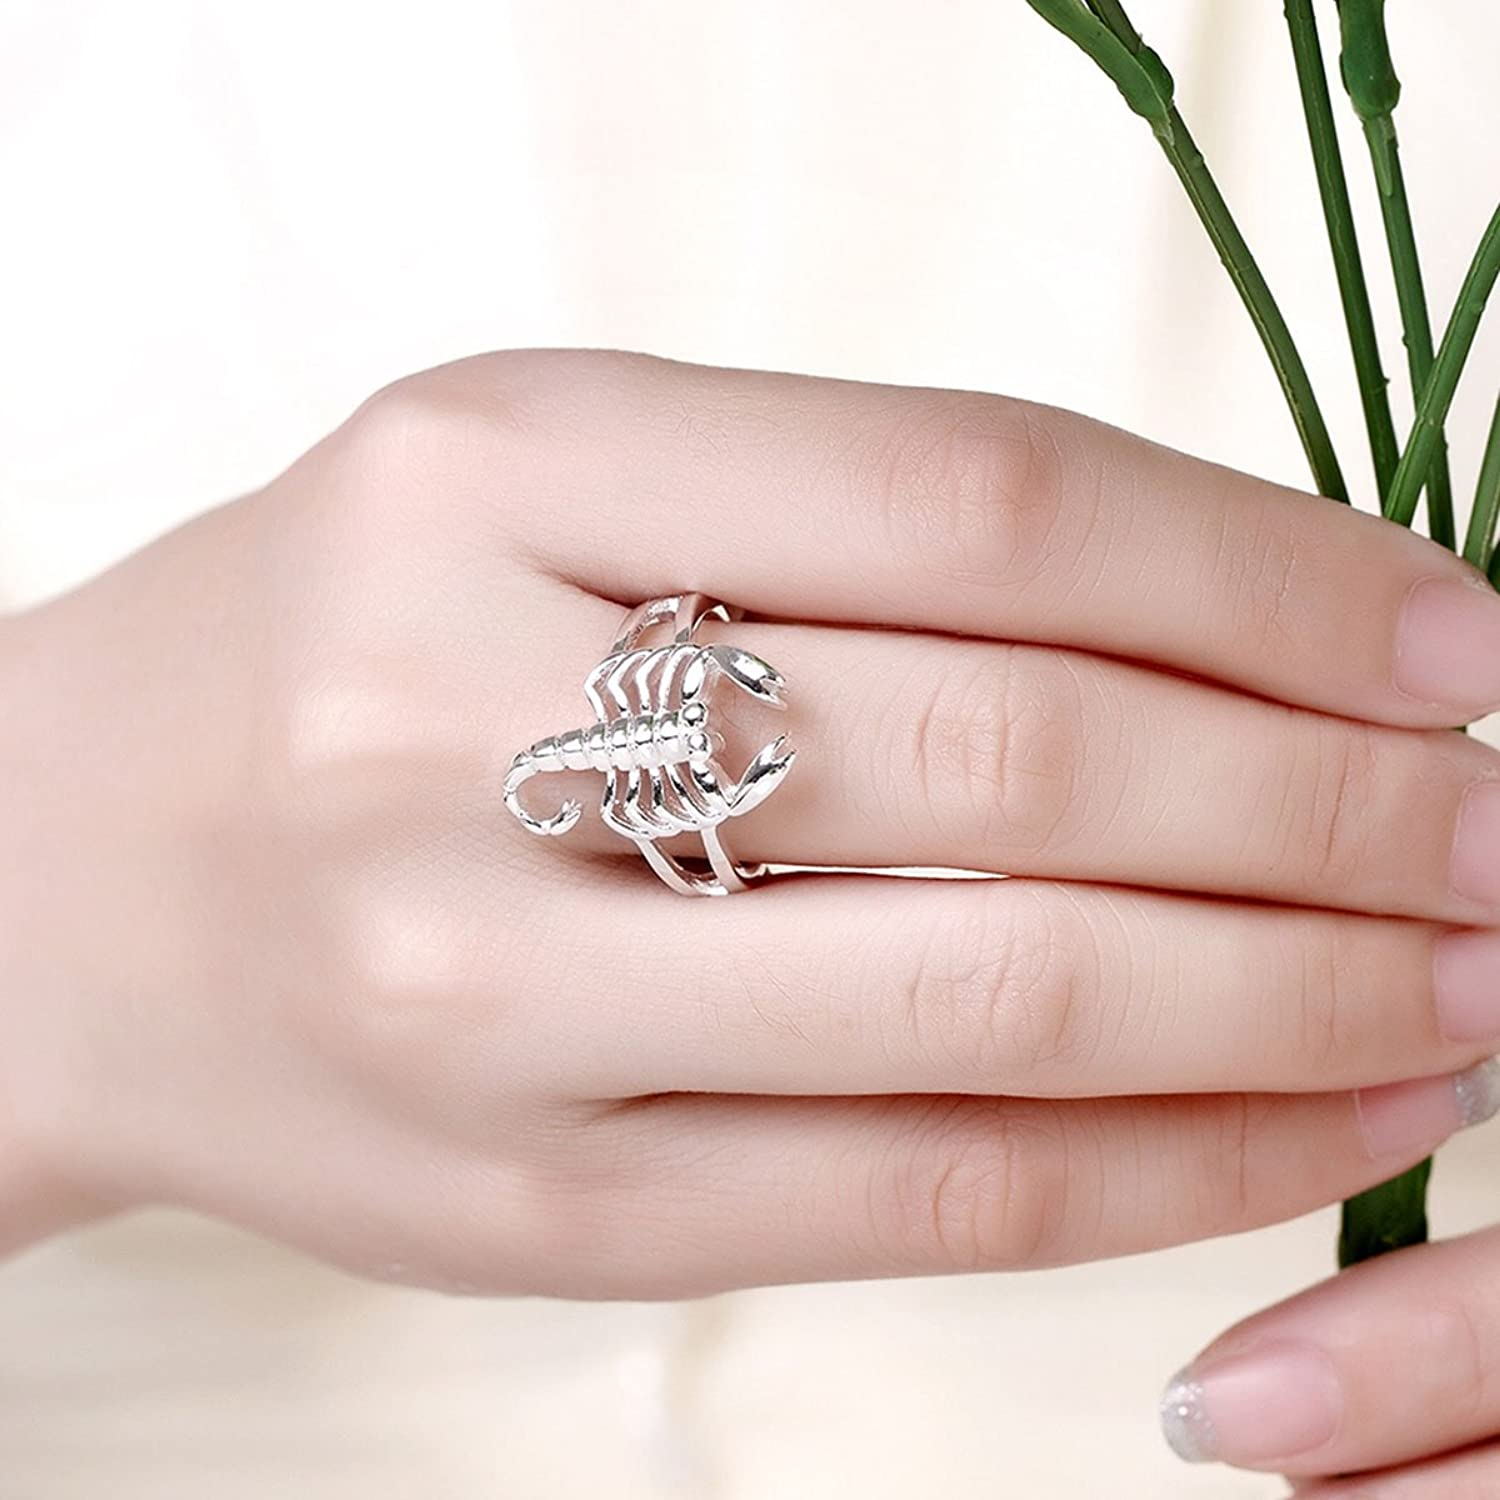 Amazon.com: Godyce Scorpion Ring for Women Size 7-8 - Sterling ...